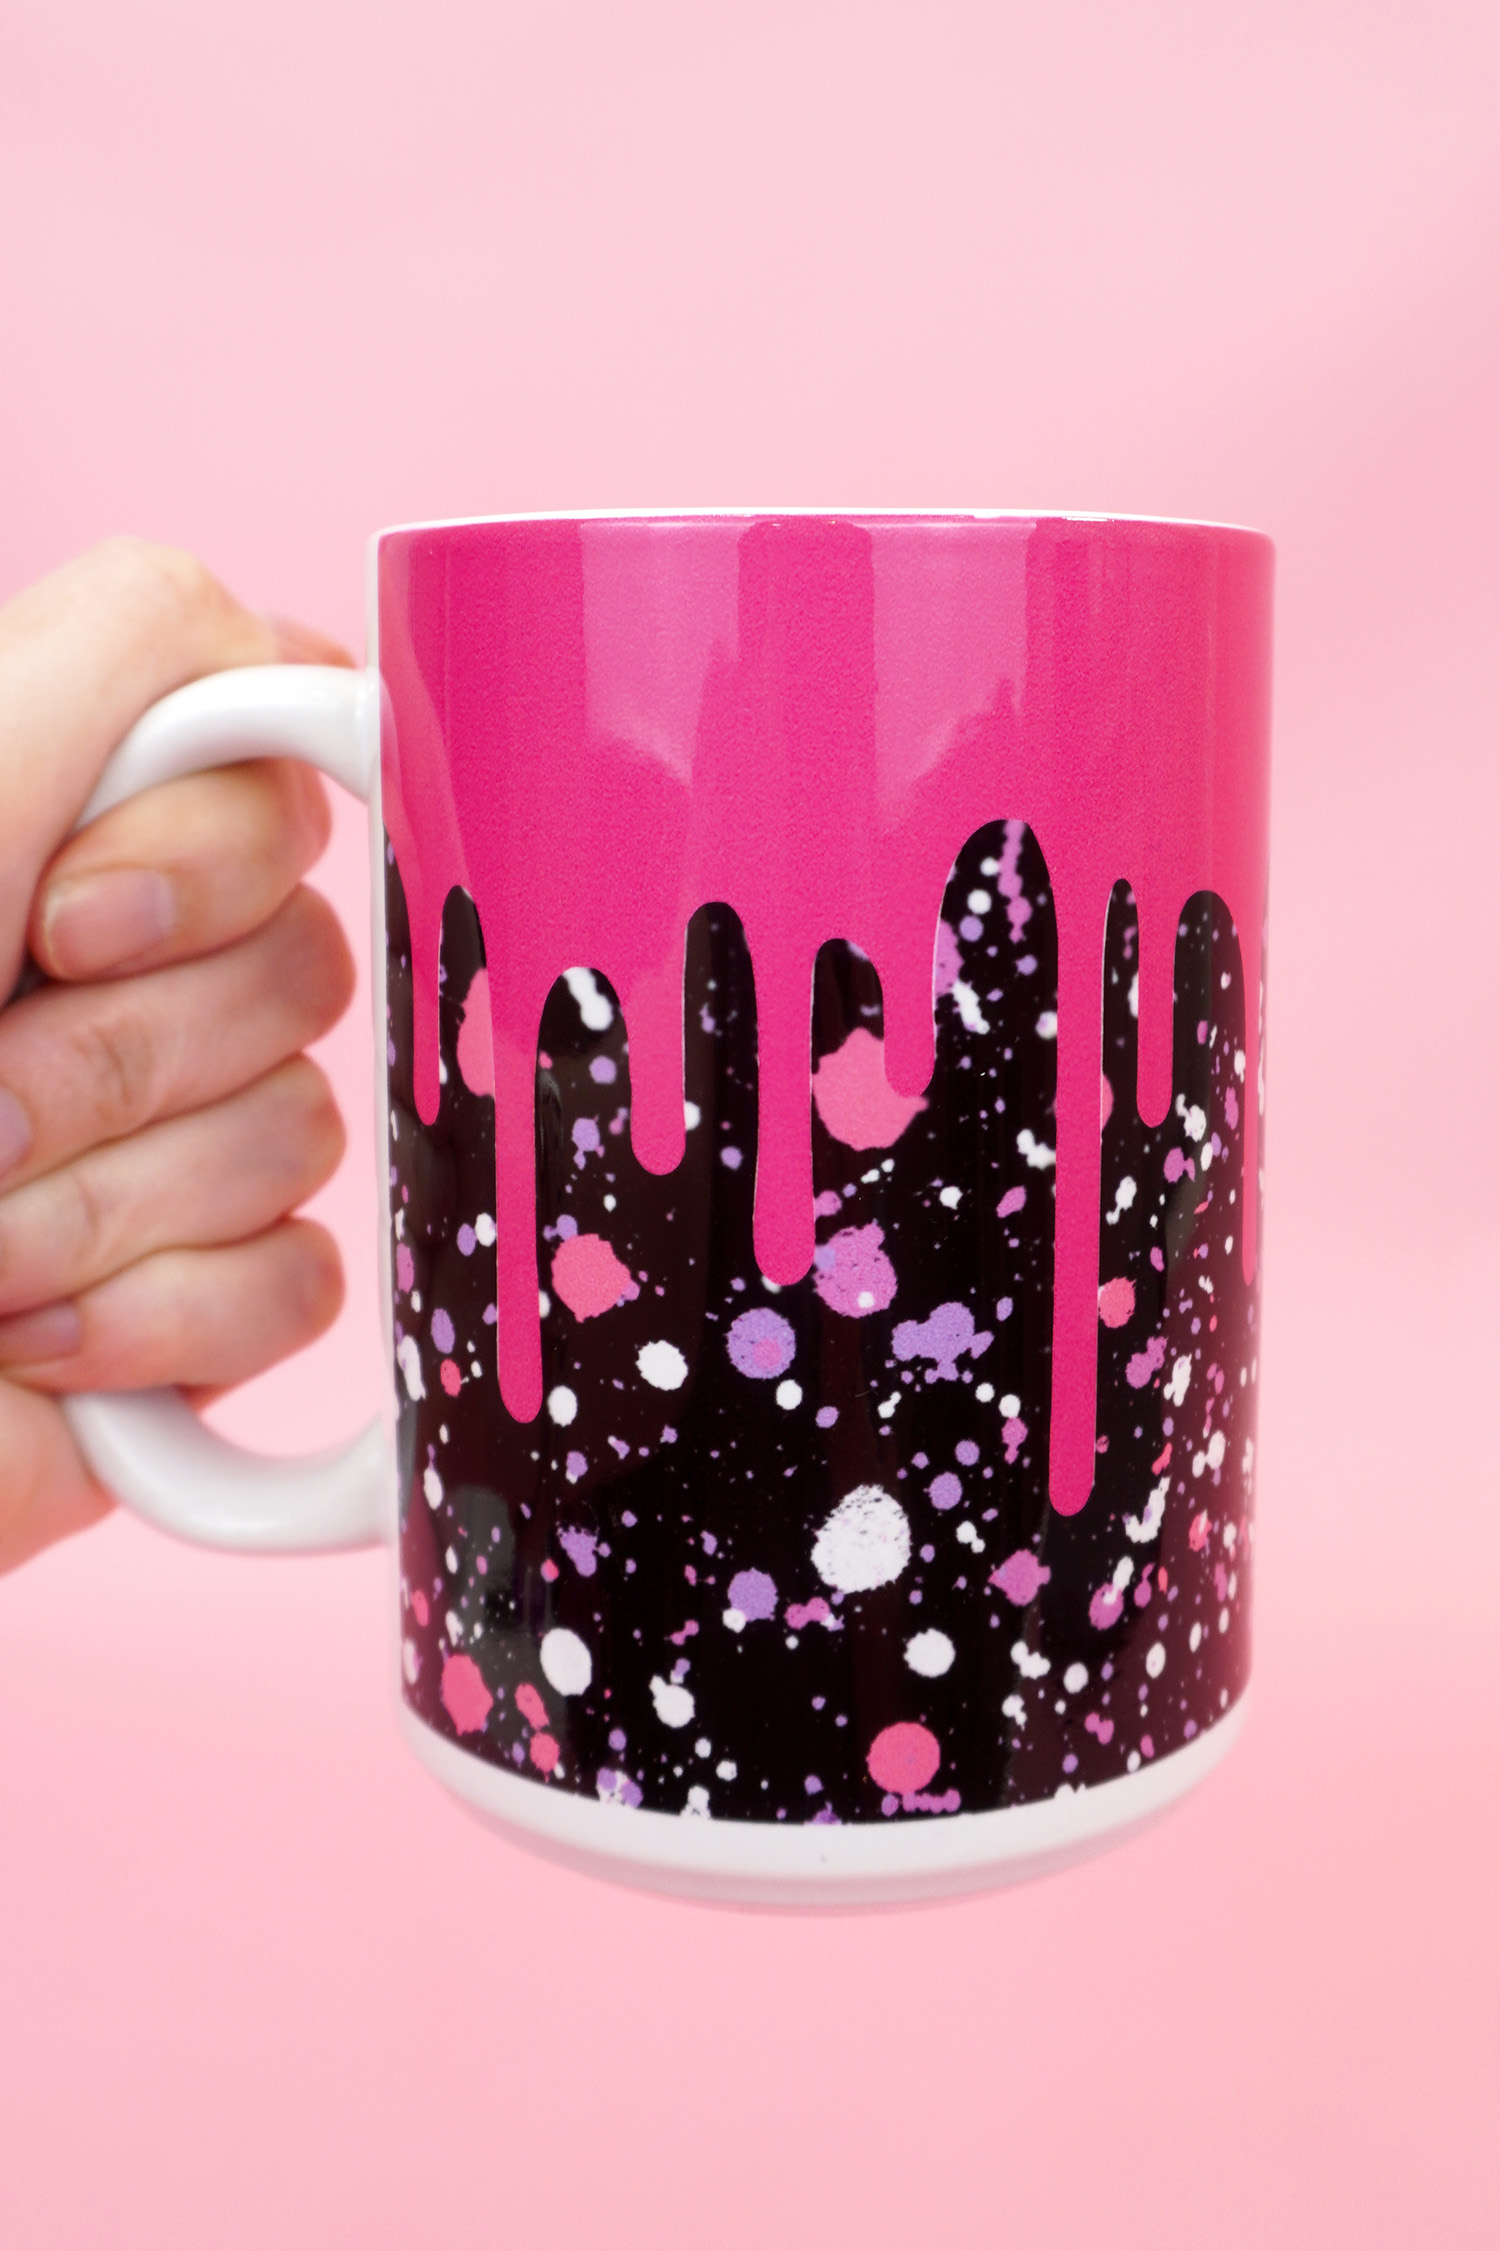 """Hand holding pink and black """"drippy"""" mug on a pink background"""